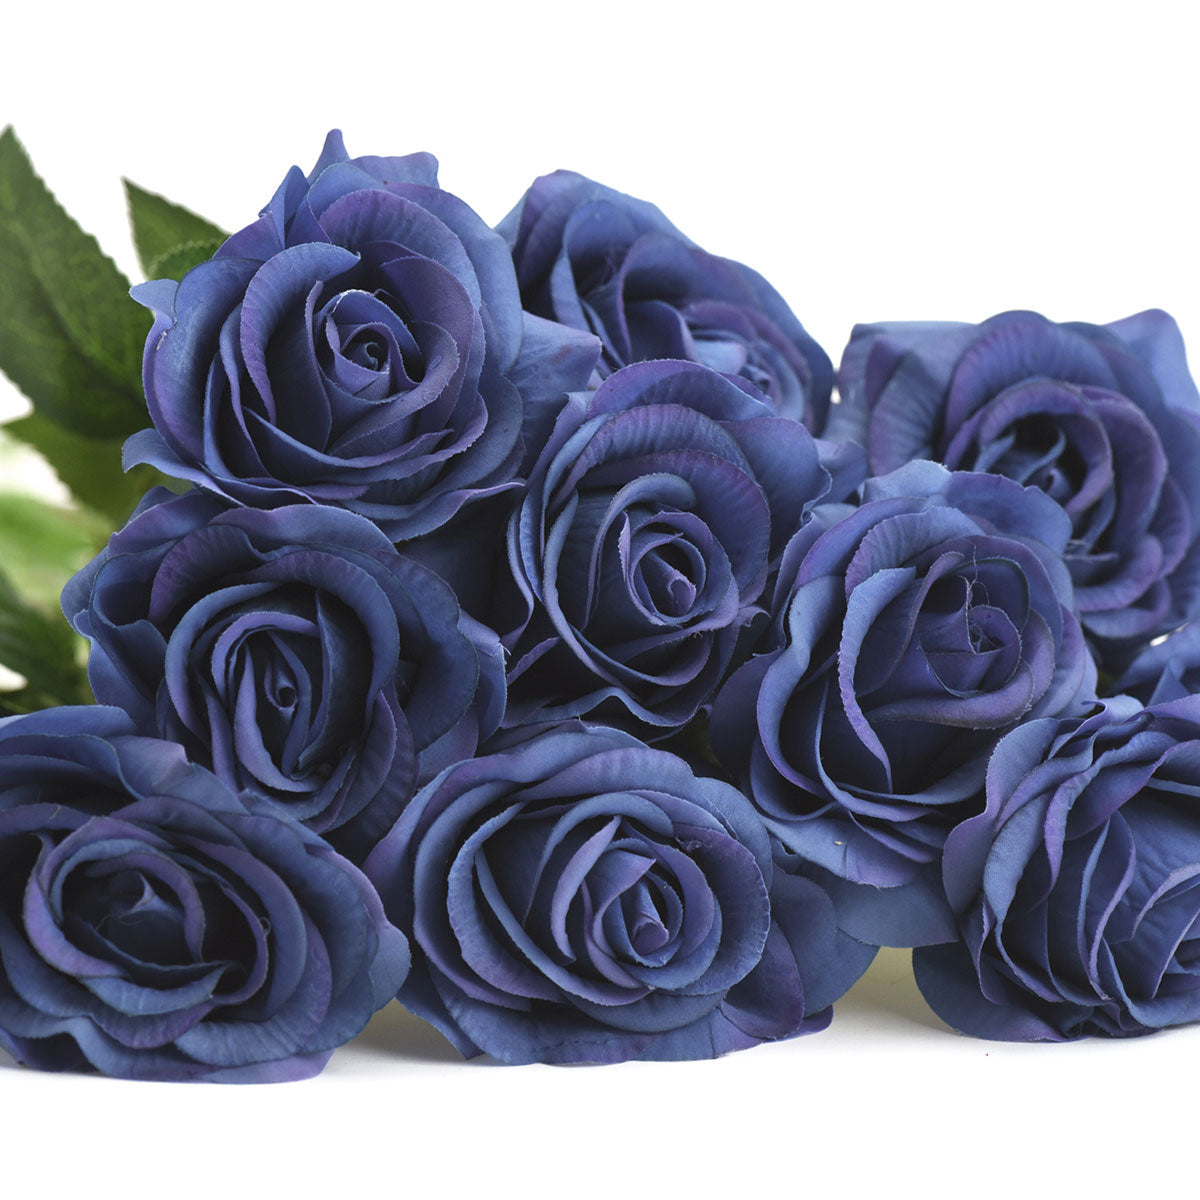 Midnight Blue Real Touch Silk Artificial Flowers 'Petals Feel and Look like Fresh Roses 10 Stems